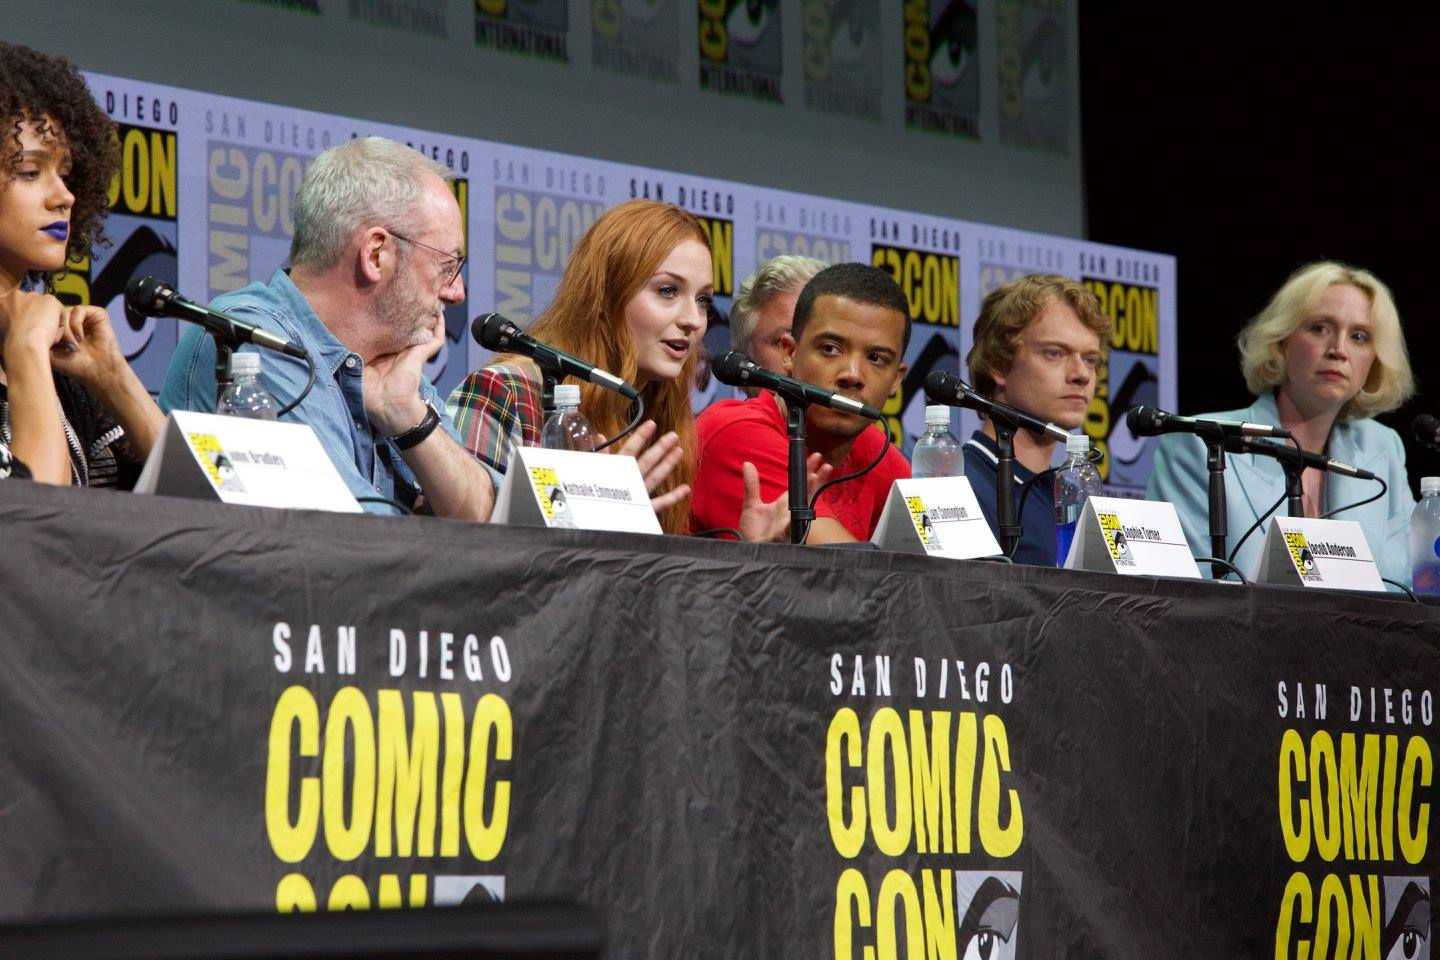 San Diego Comic Con Game Of Thrones Cast